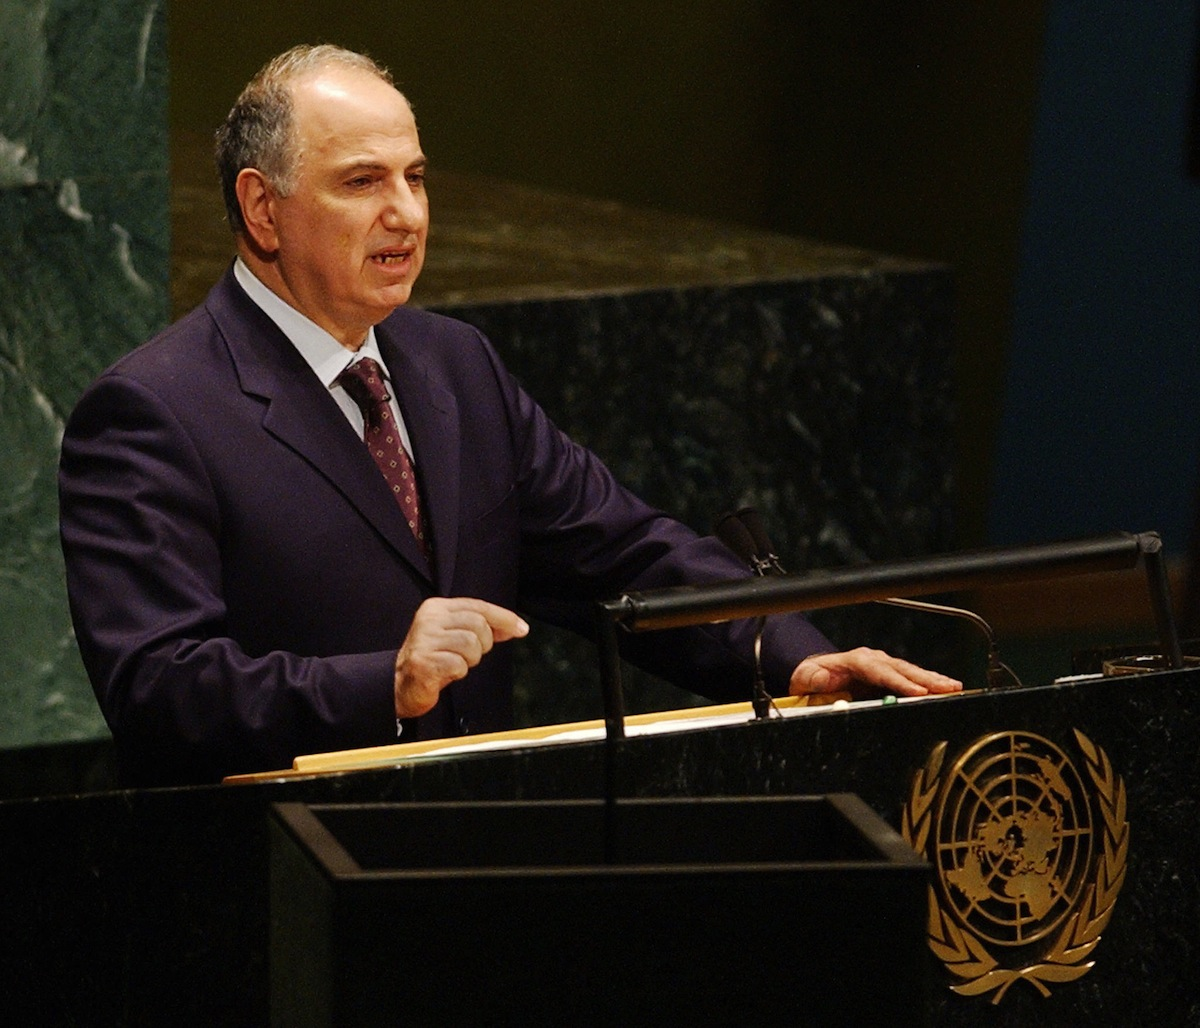 Ahmed Chalabi, one of nine rotating presidents of the Iraqi Governing Council, speaks to the 58th Session of the United Nations General Assembly, Oct. 2, 2003, at UN headquarters in New York.